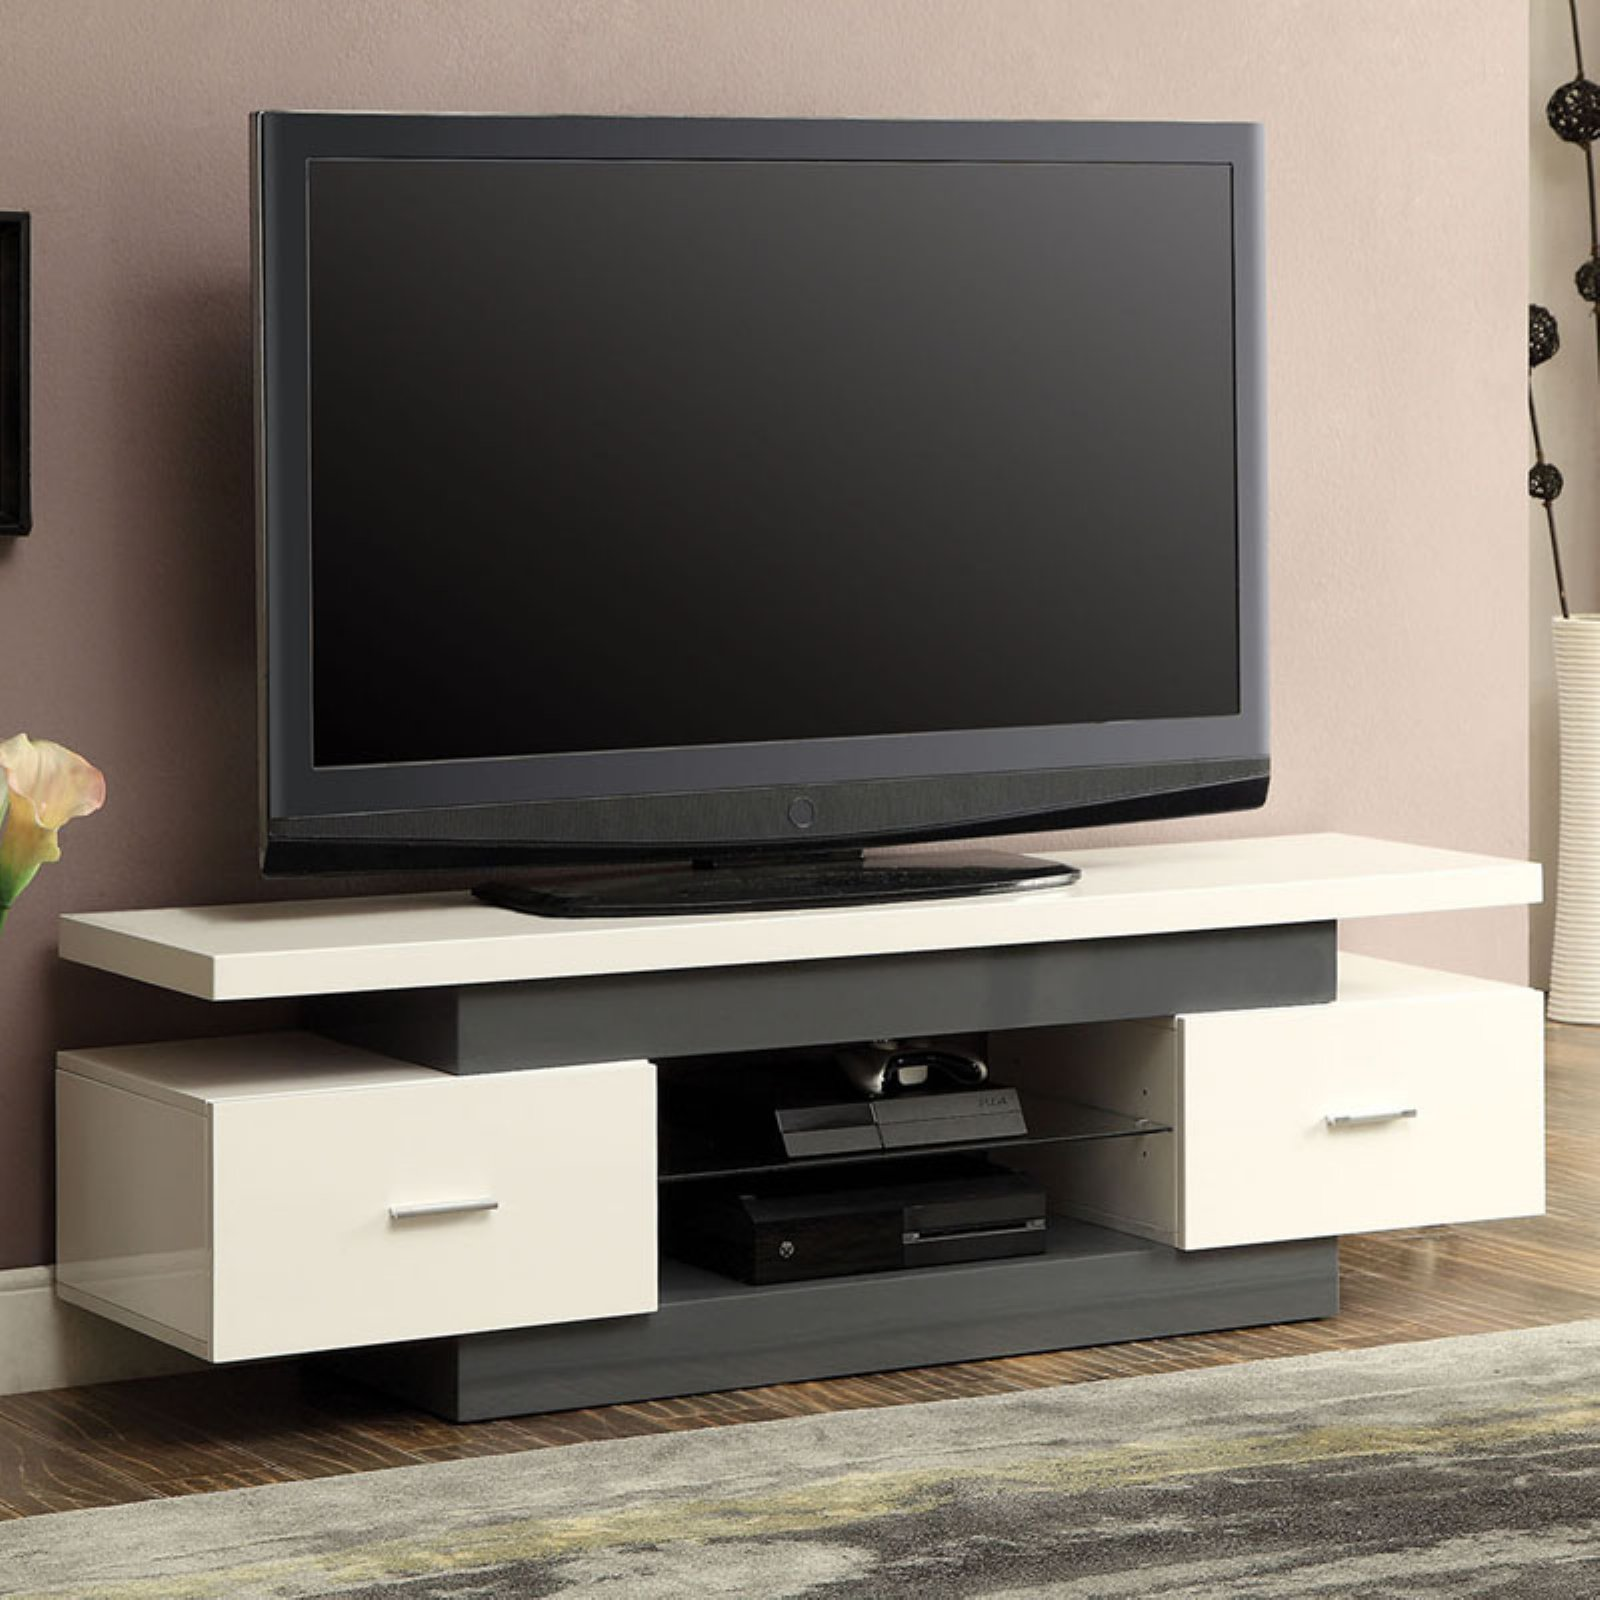 "Acme Vicente TV Stand for TVs up to 49"", White and Gray"